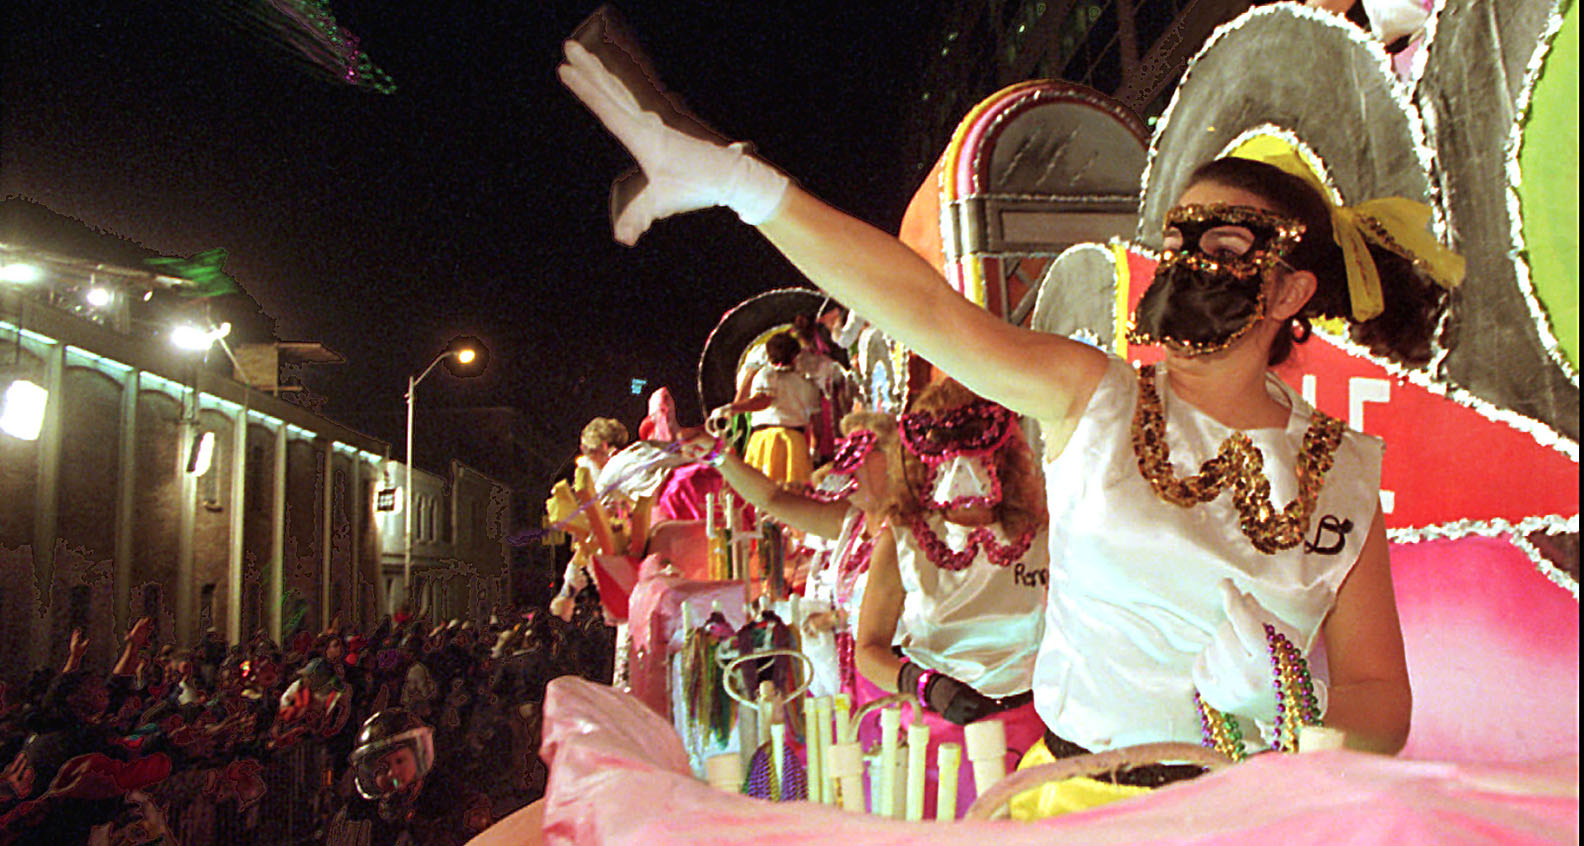 Mardi Gras parade at night